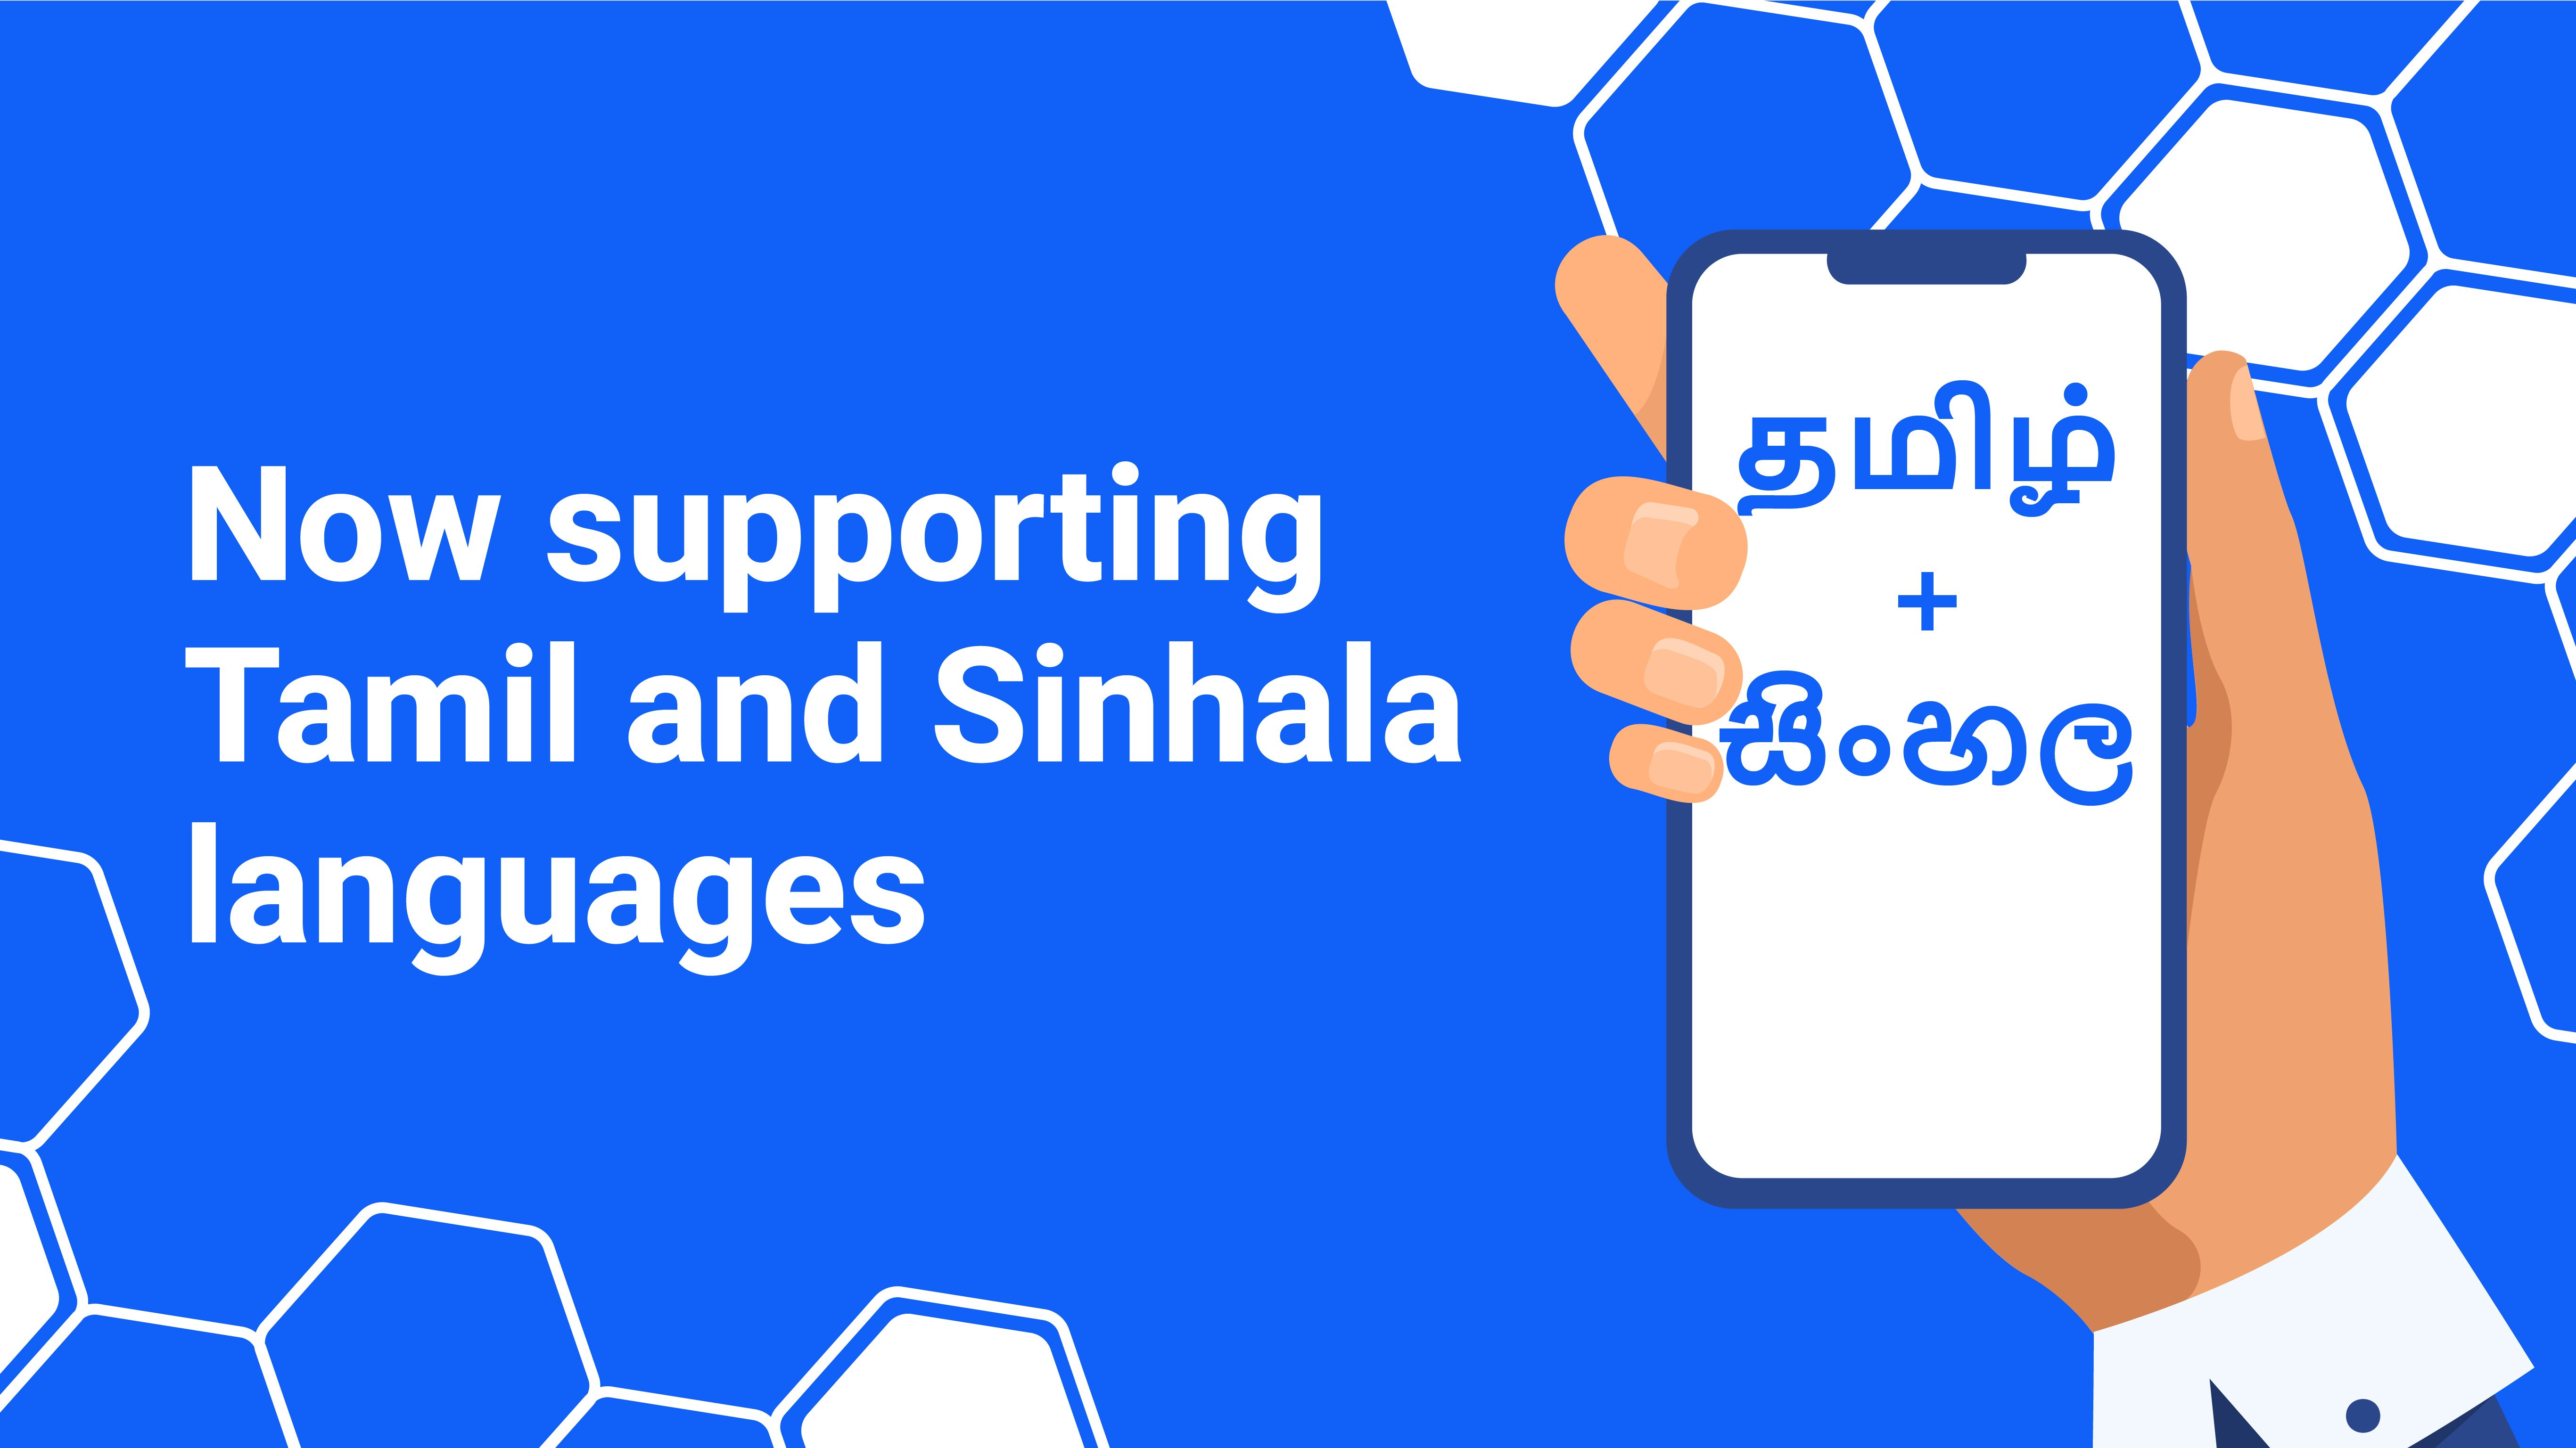 Sinhala and Tamil  Languages Now Supported on  Remitbee's Website